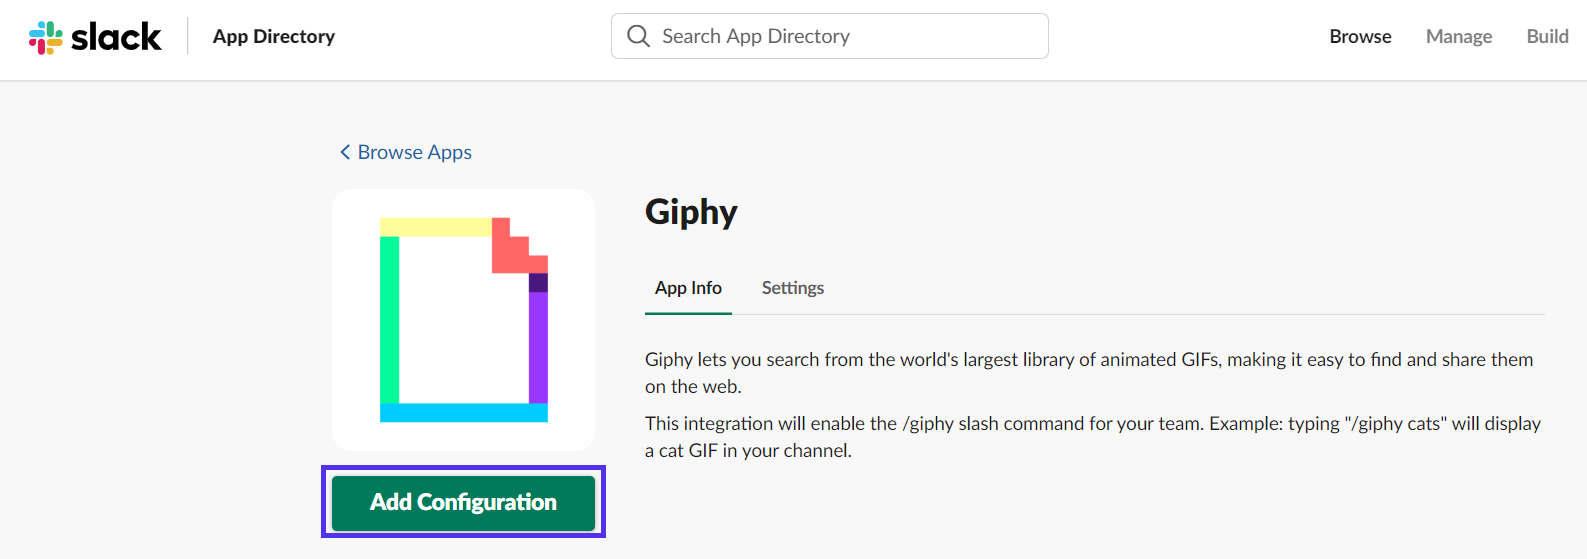 slack giphy add configuration